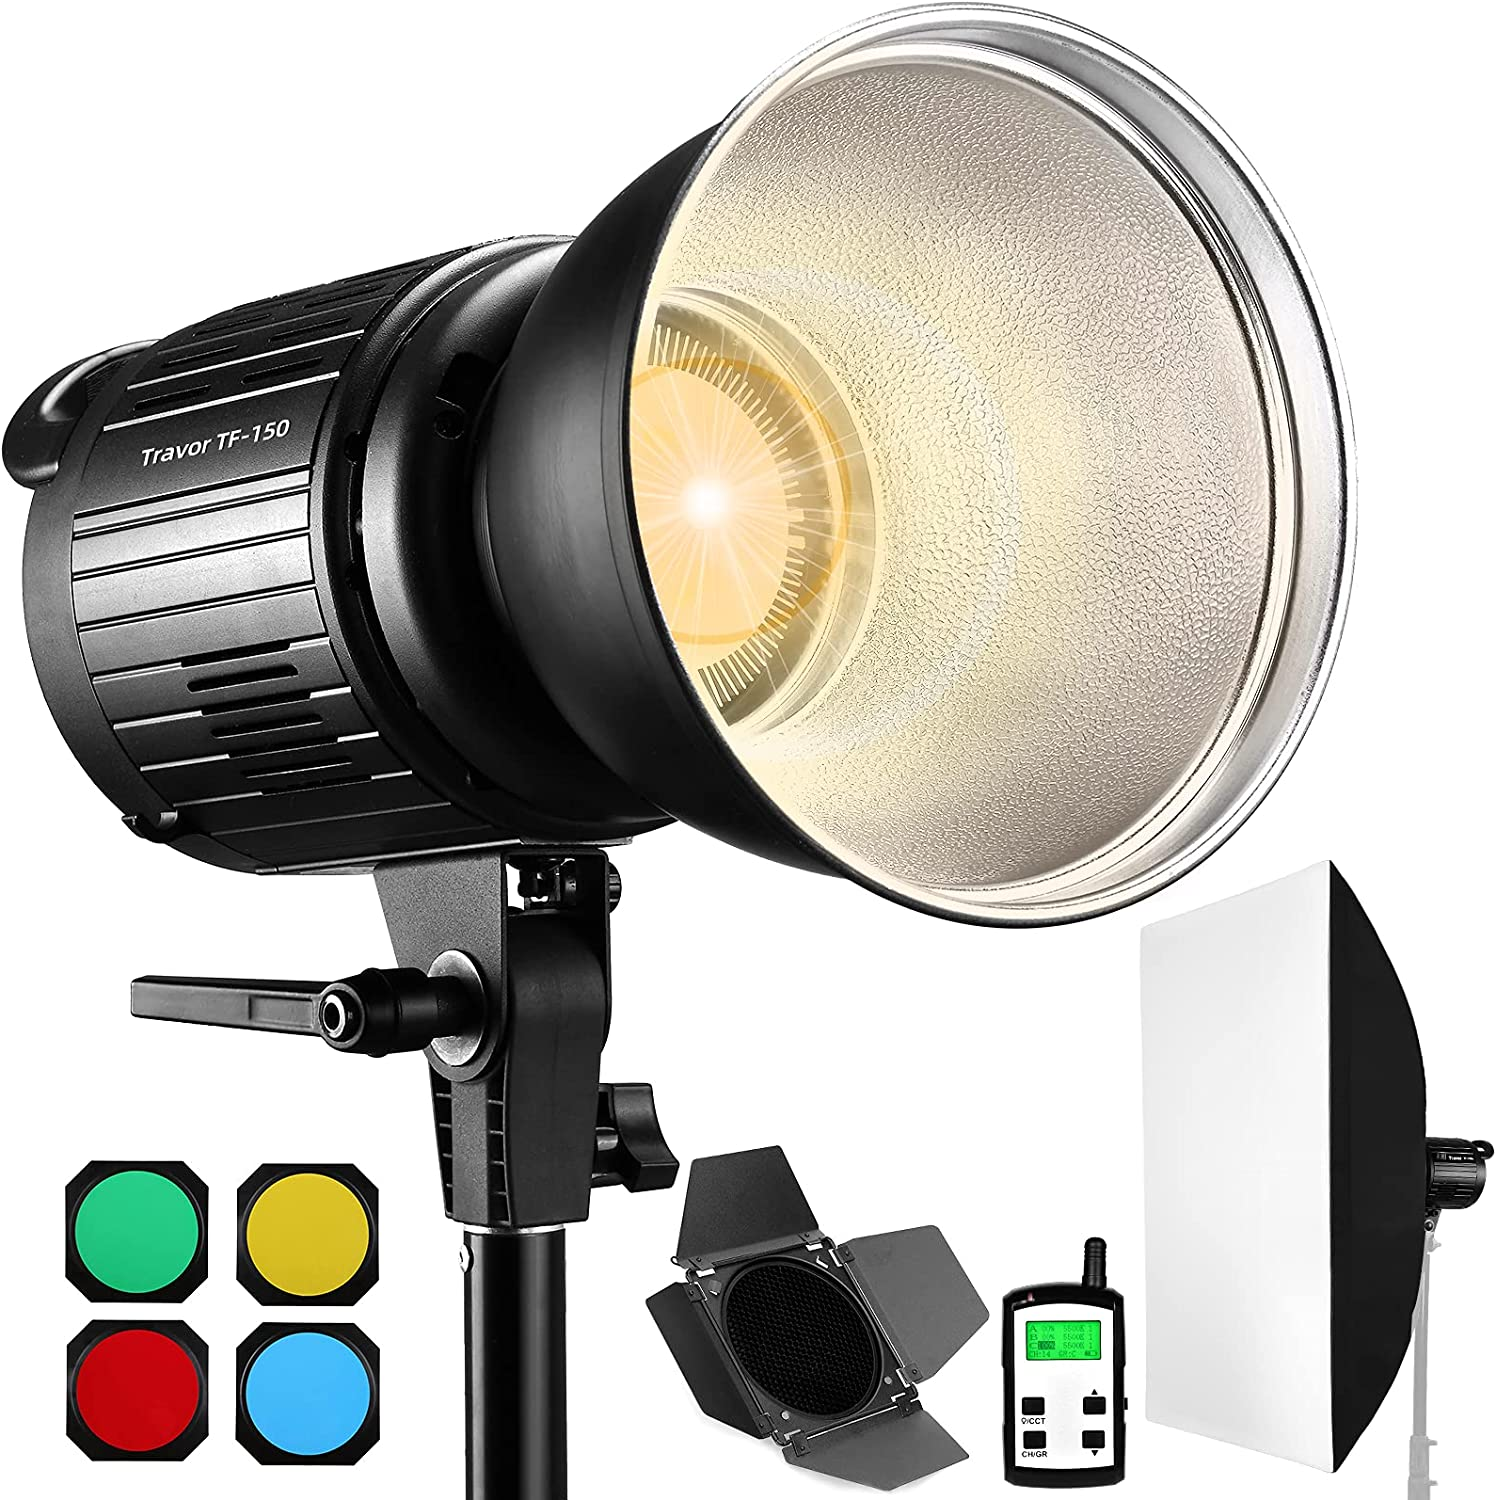 Travor TF-150A Bi-Color 150W LED Max 84% shopping OFF Light with Bowens Mount Video